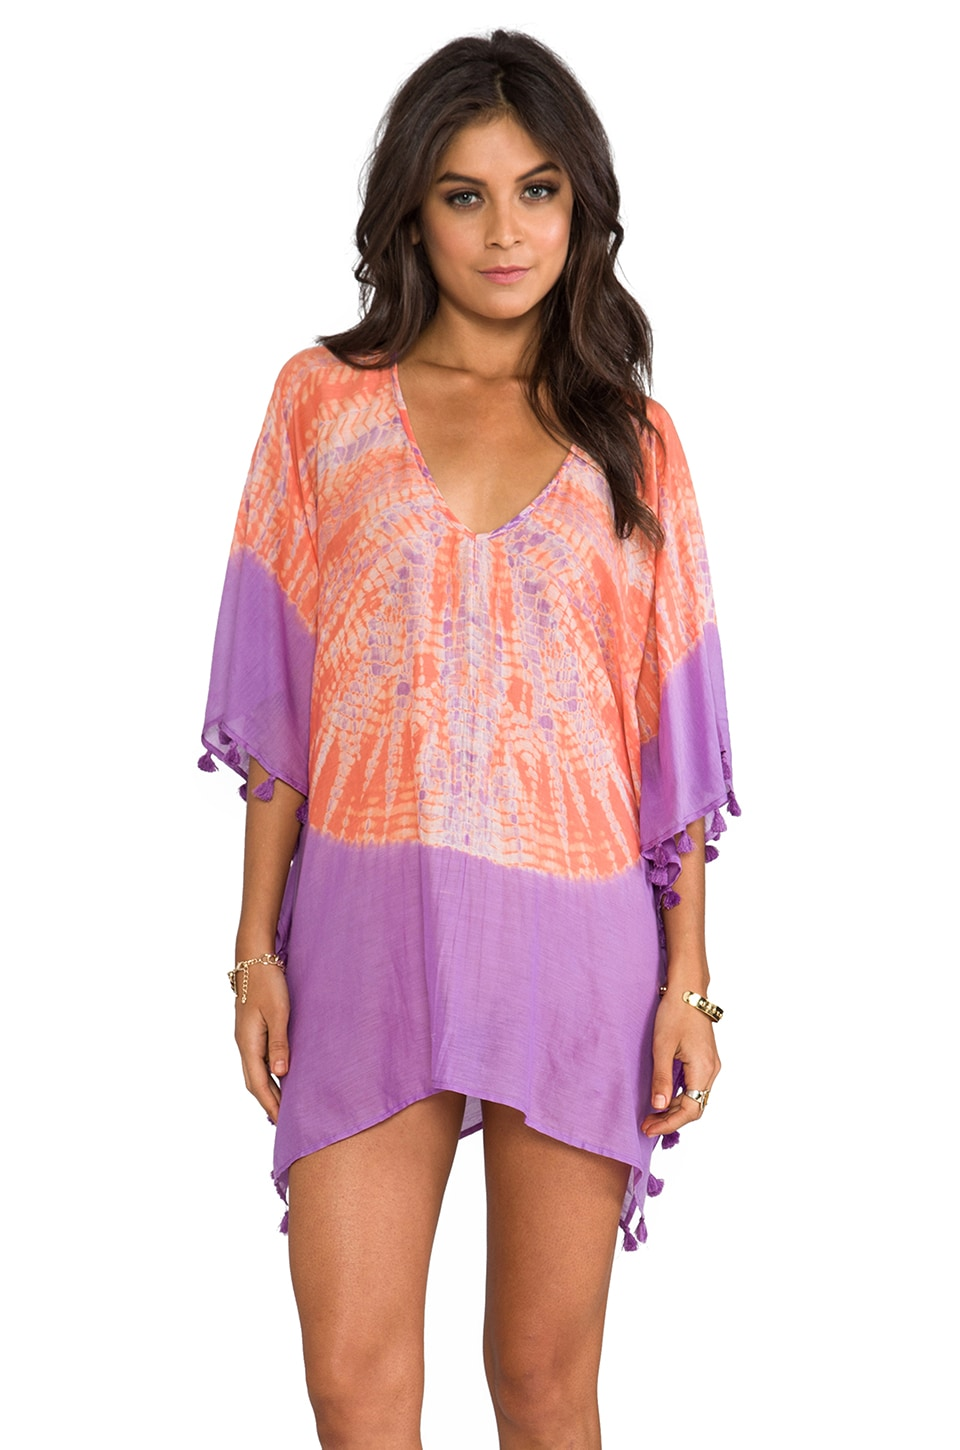 Vix Swimwear Saicu Caftan in Solid Grape